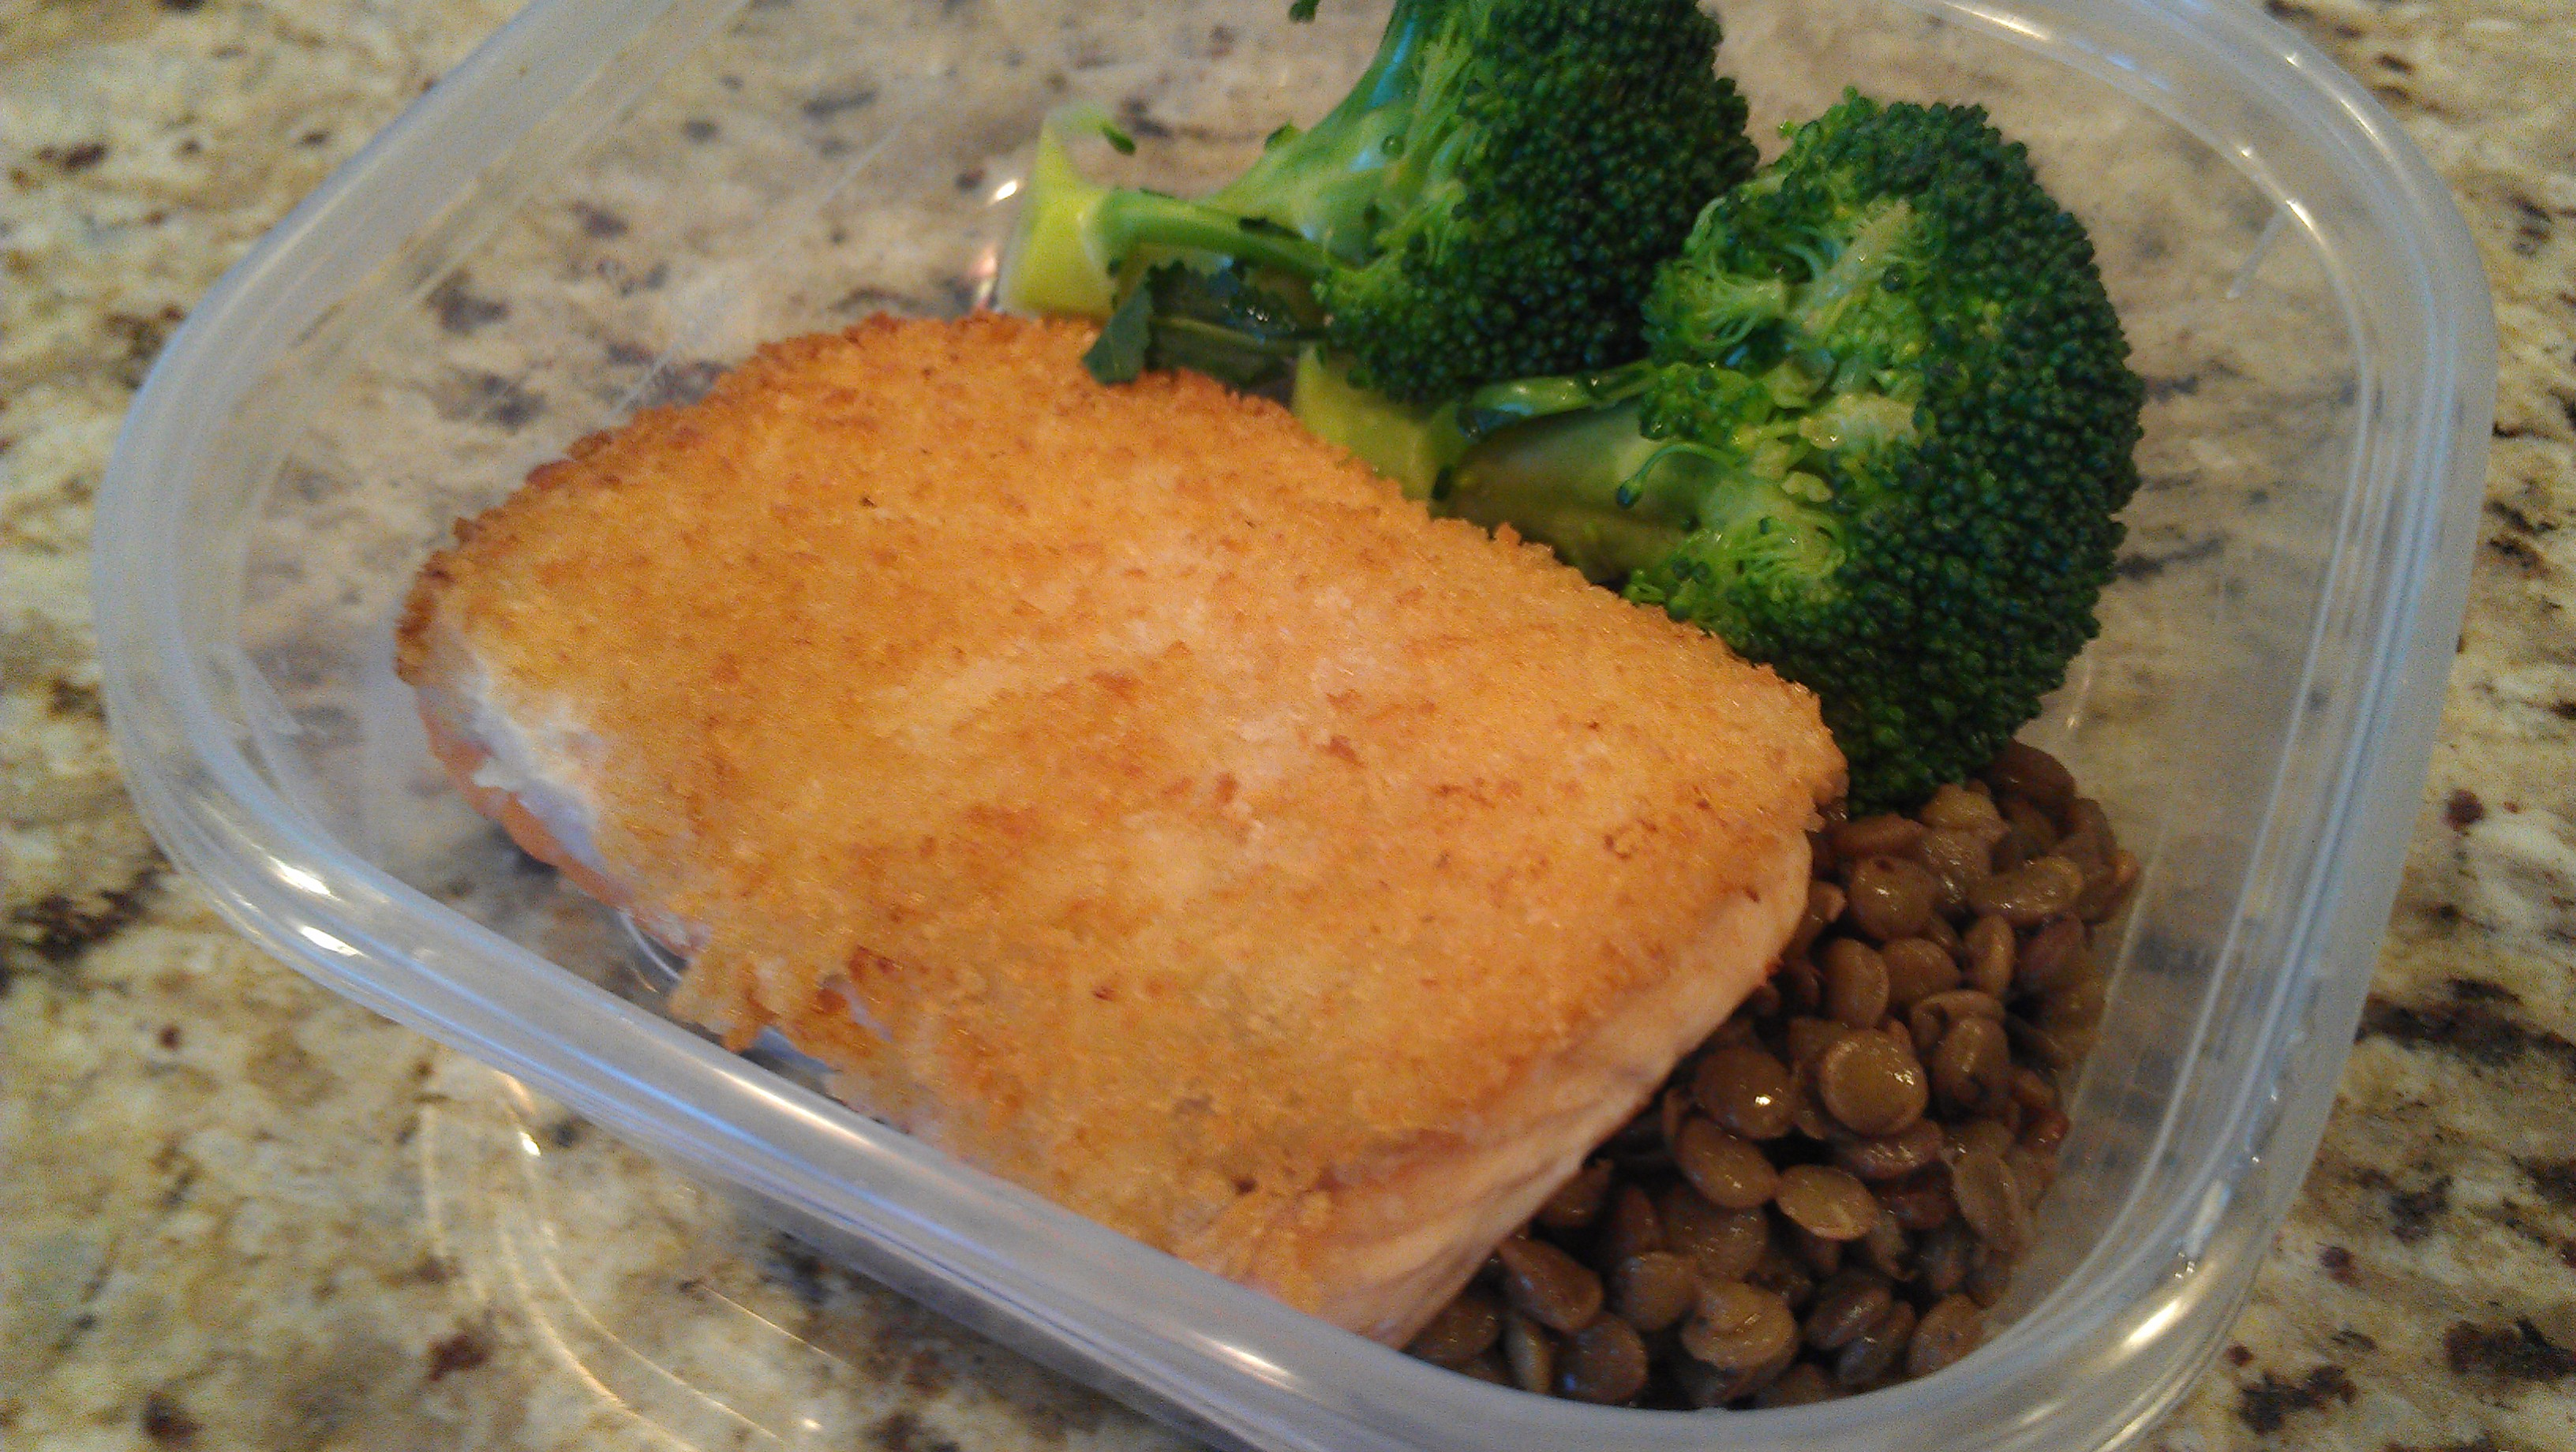 Horseradish crusted salmon pic